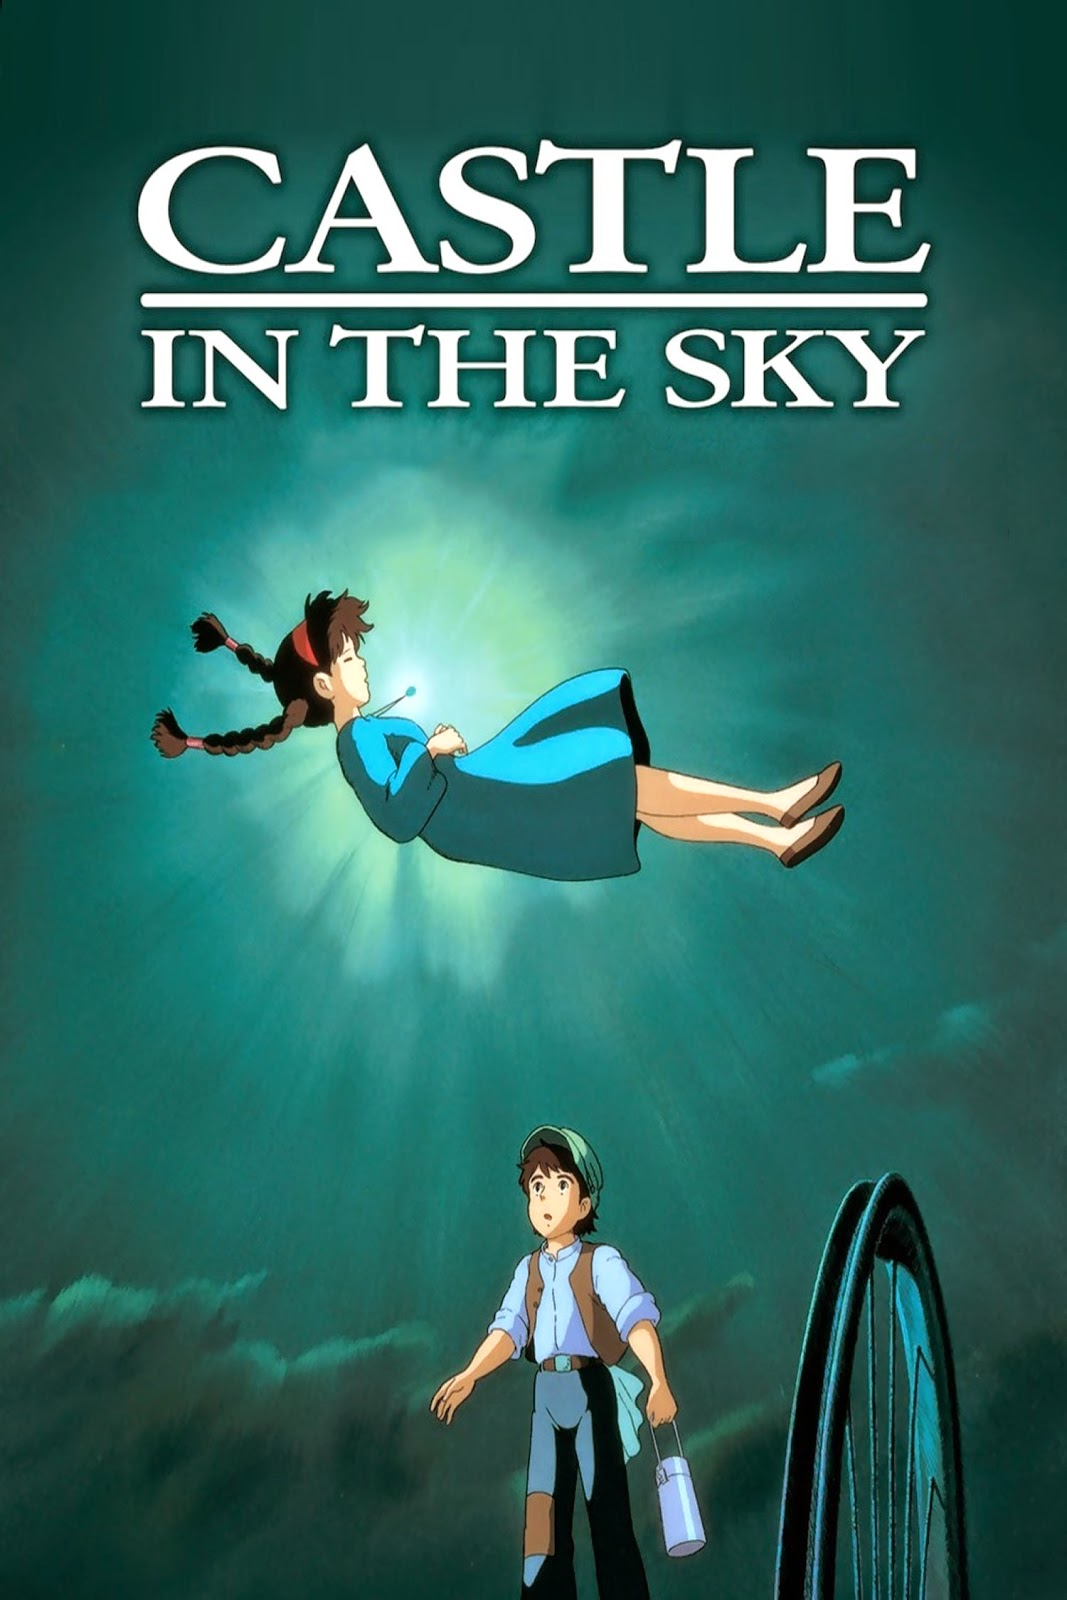 Watch Castle in the Sky (1986) Online For Free Full Movie English Stream